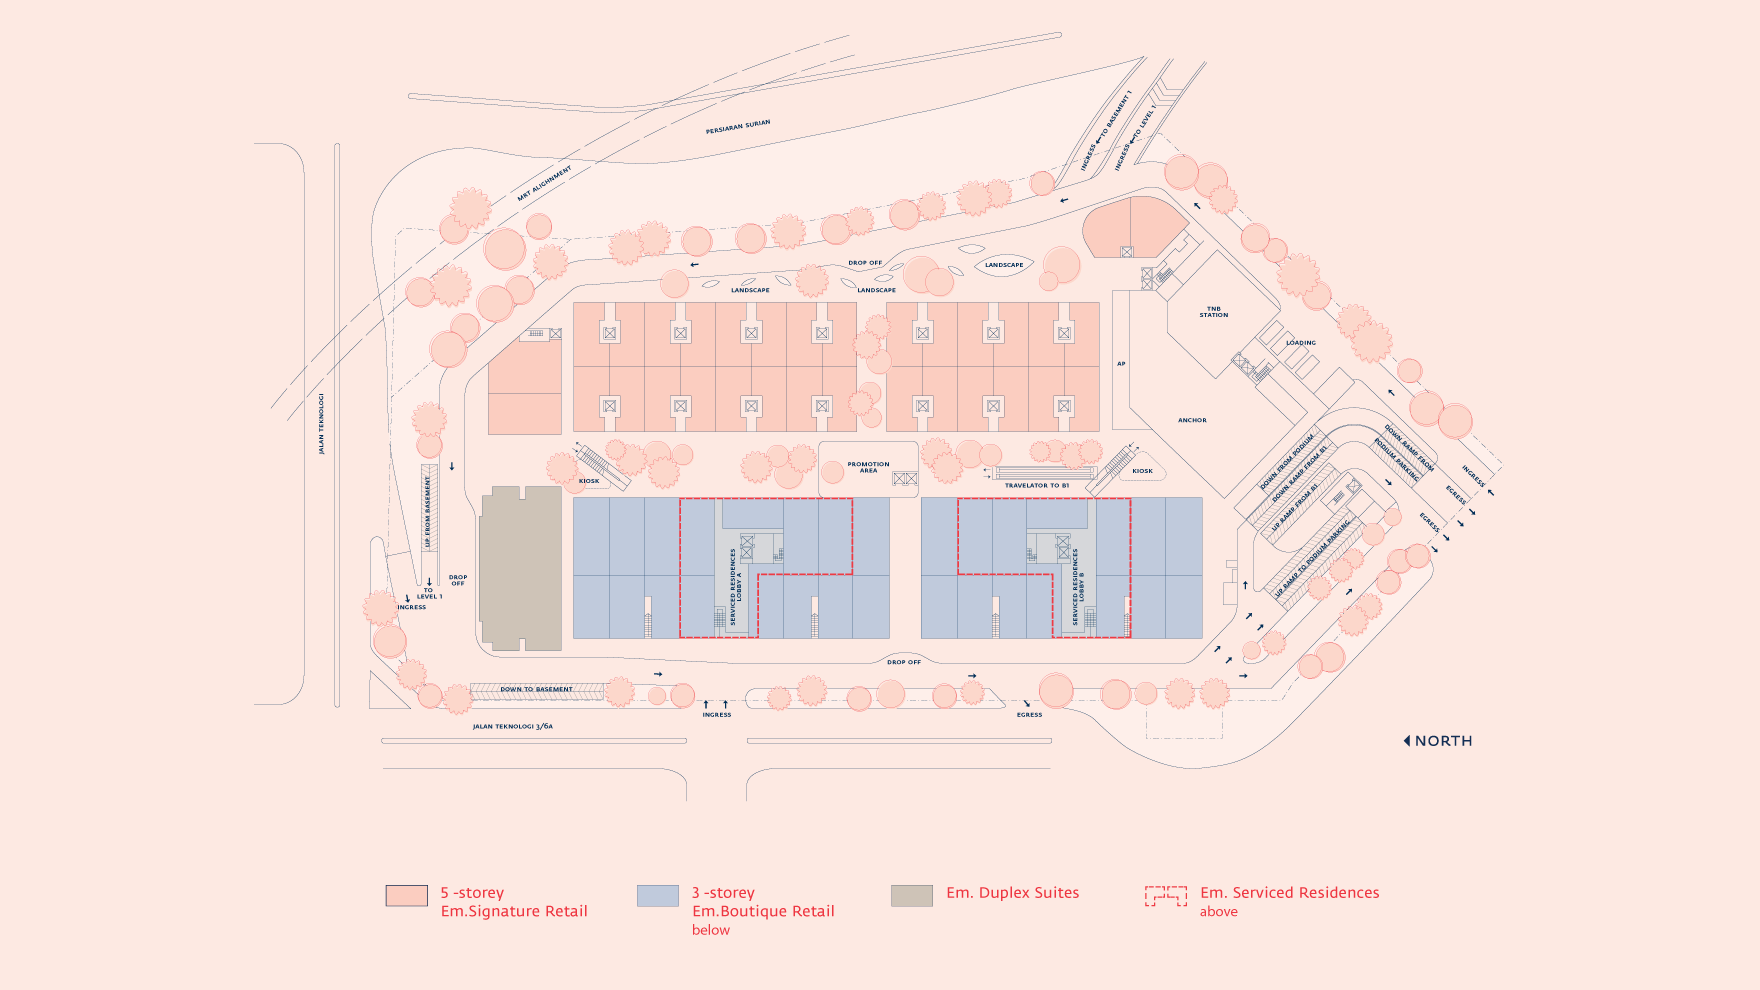 Site Plan of Emporis